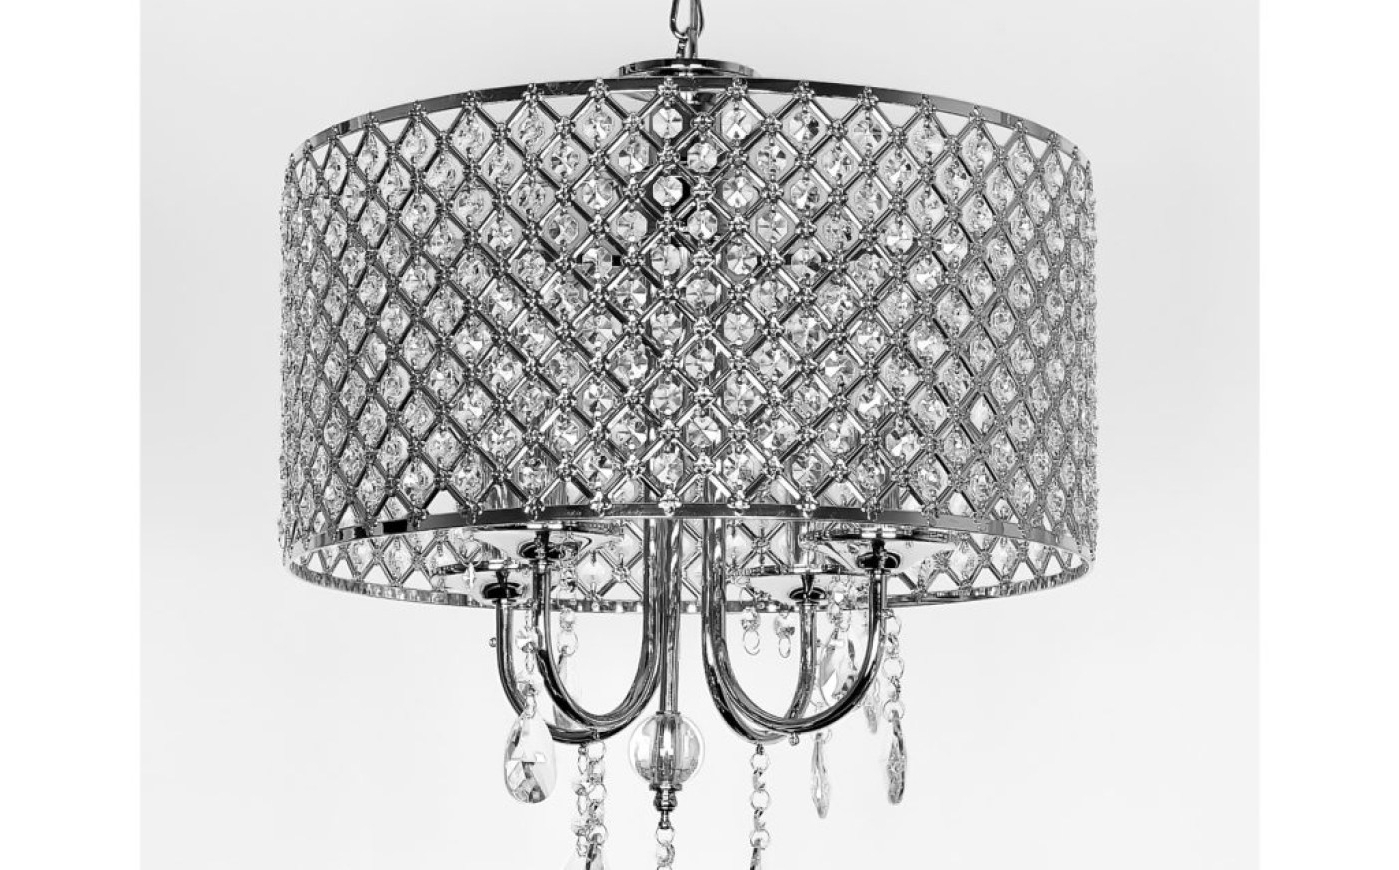 Chandelier Light Fixture For Ceiling Fan Intended For Popular Chandeliers Design : Amazing Black Chandelier Ceiling Fan With (View 12 of 20)